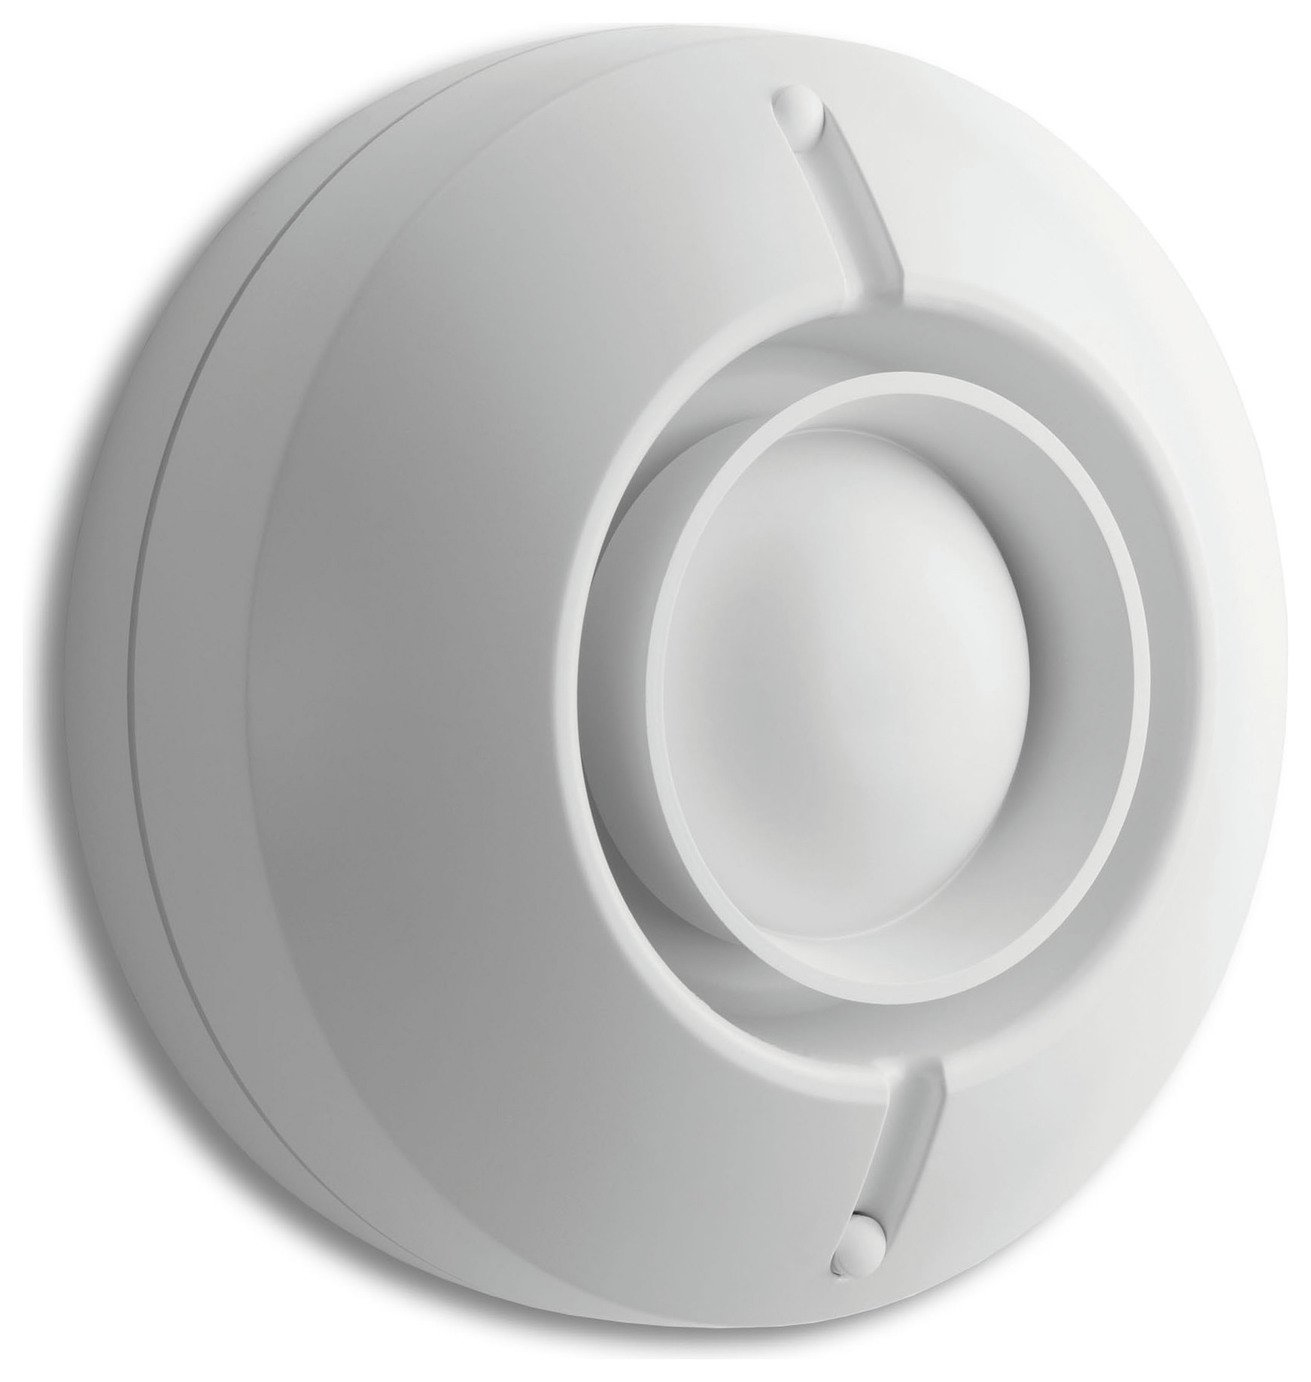 Honeywell Evohome Security Internal Battery Operated Siren